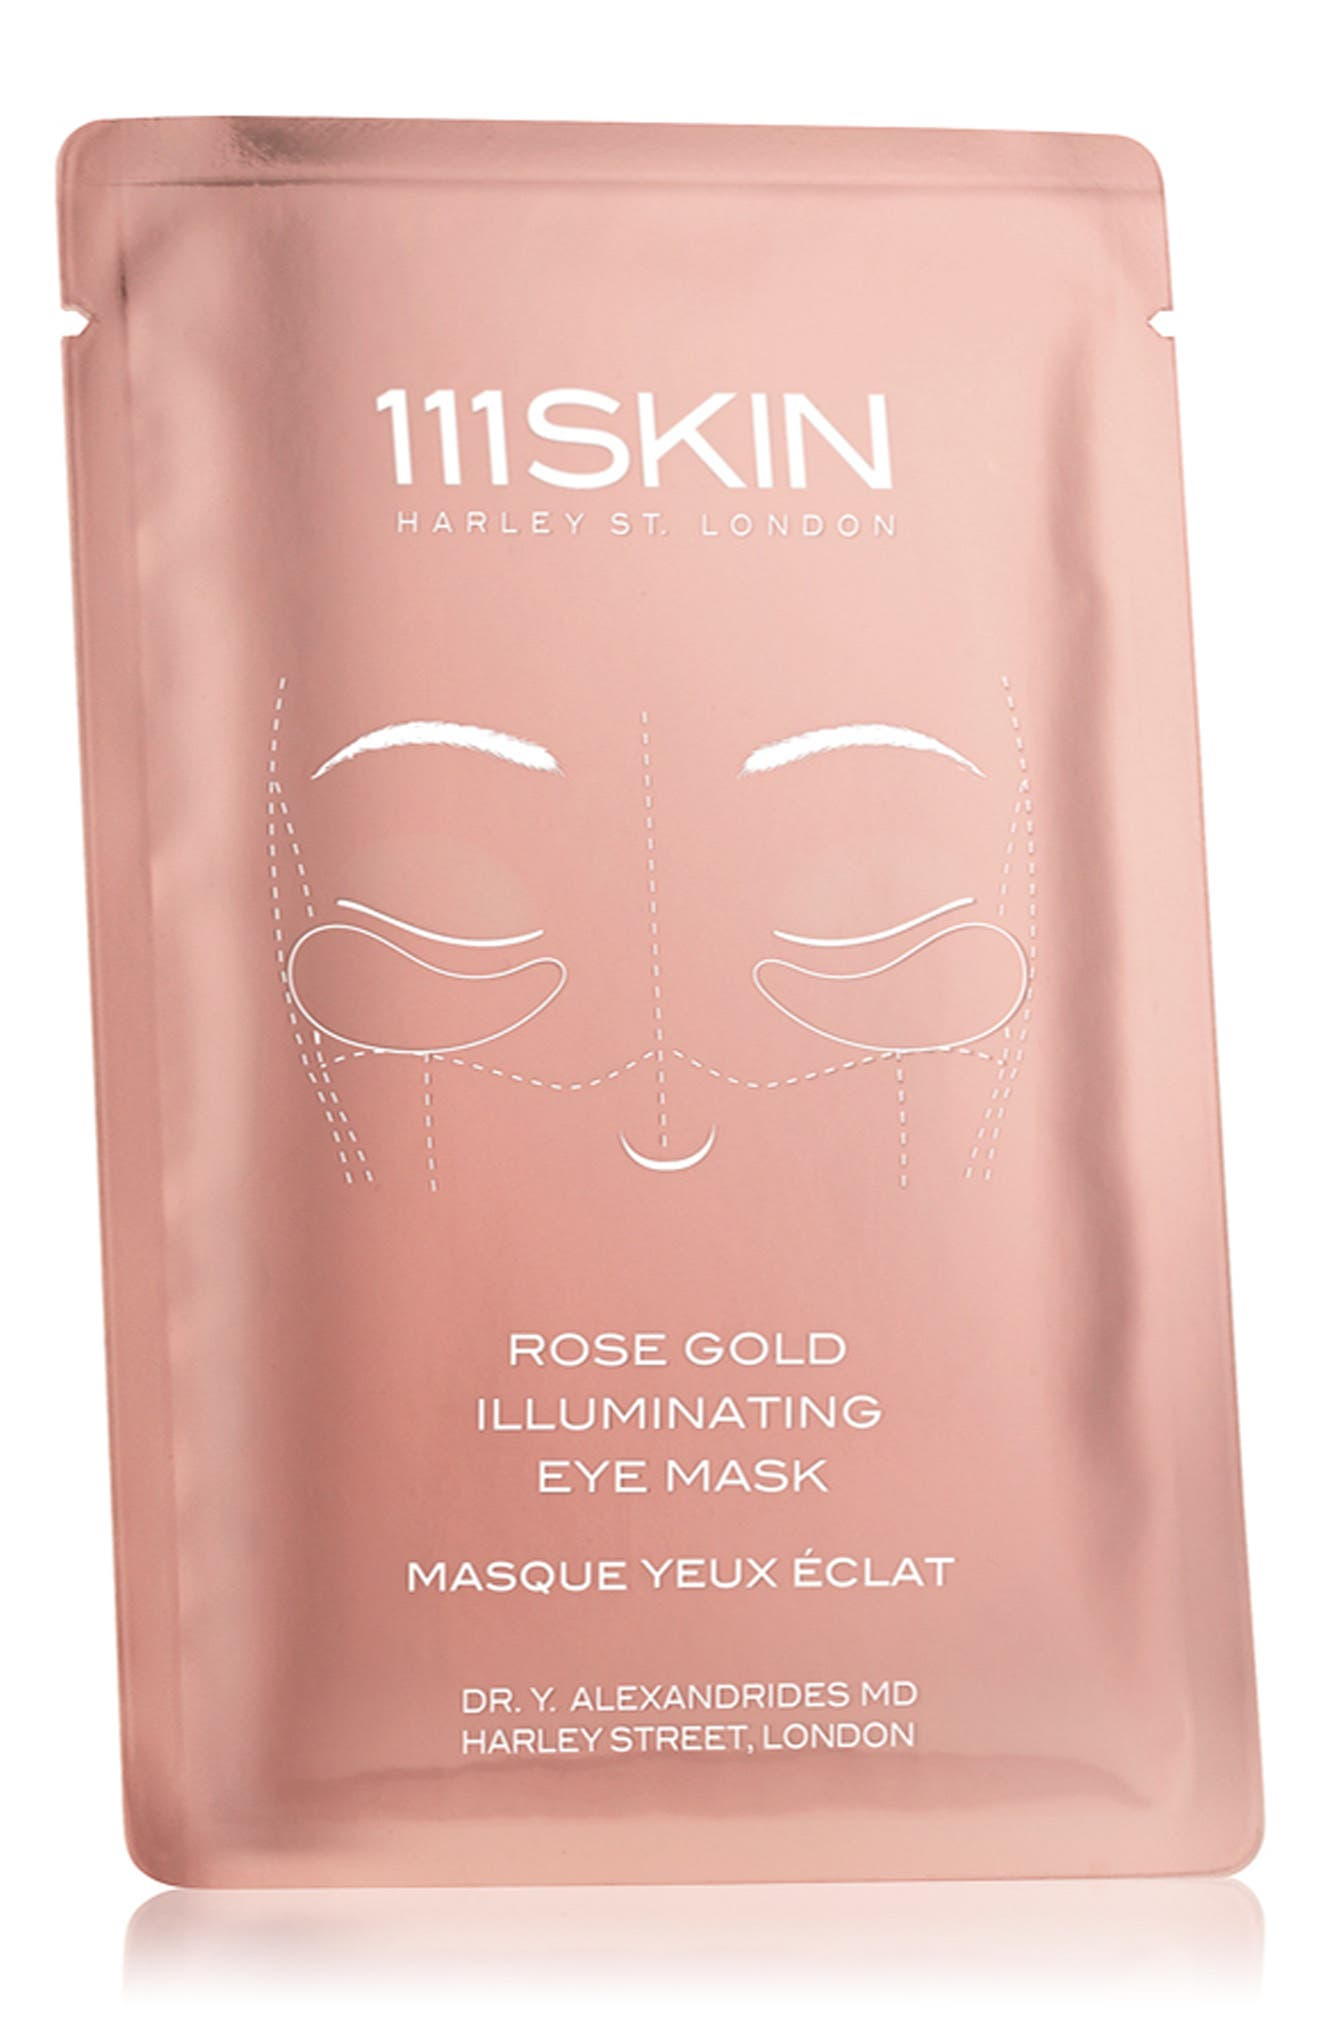 111Skin Rose Gold Illuminating Eye Mask